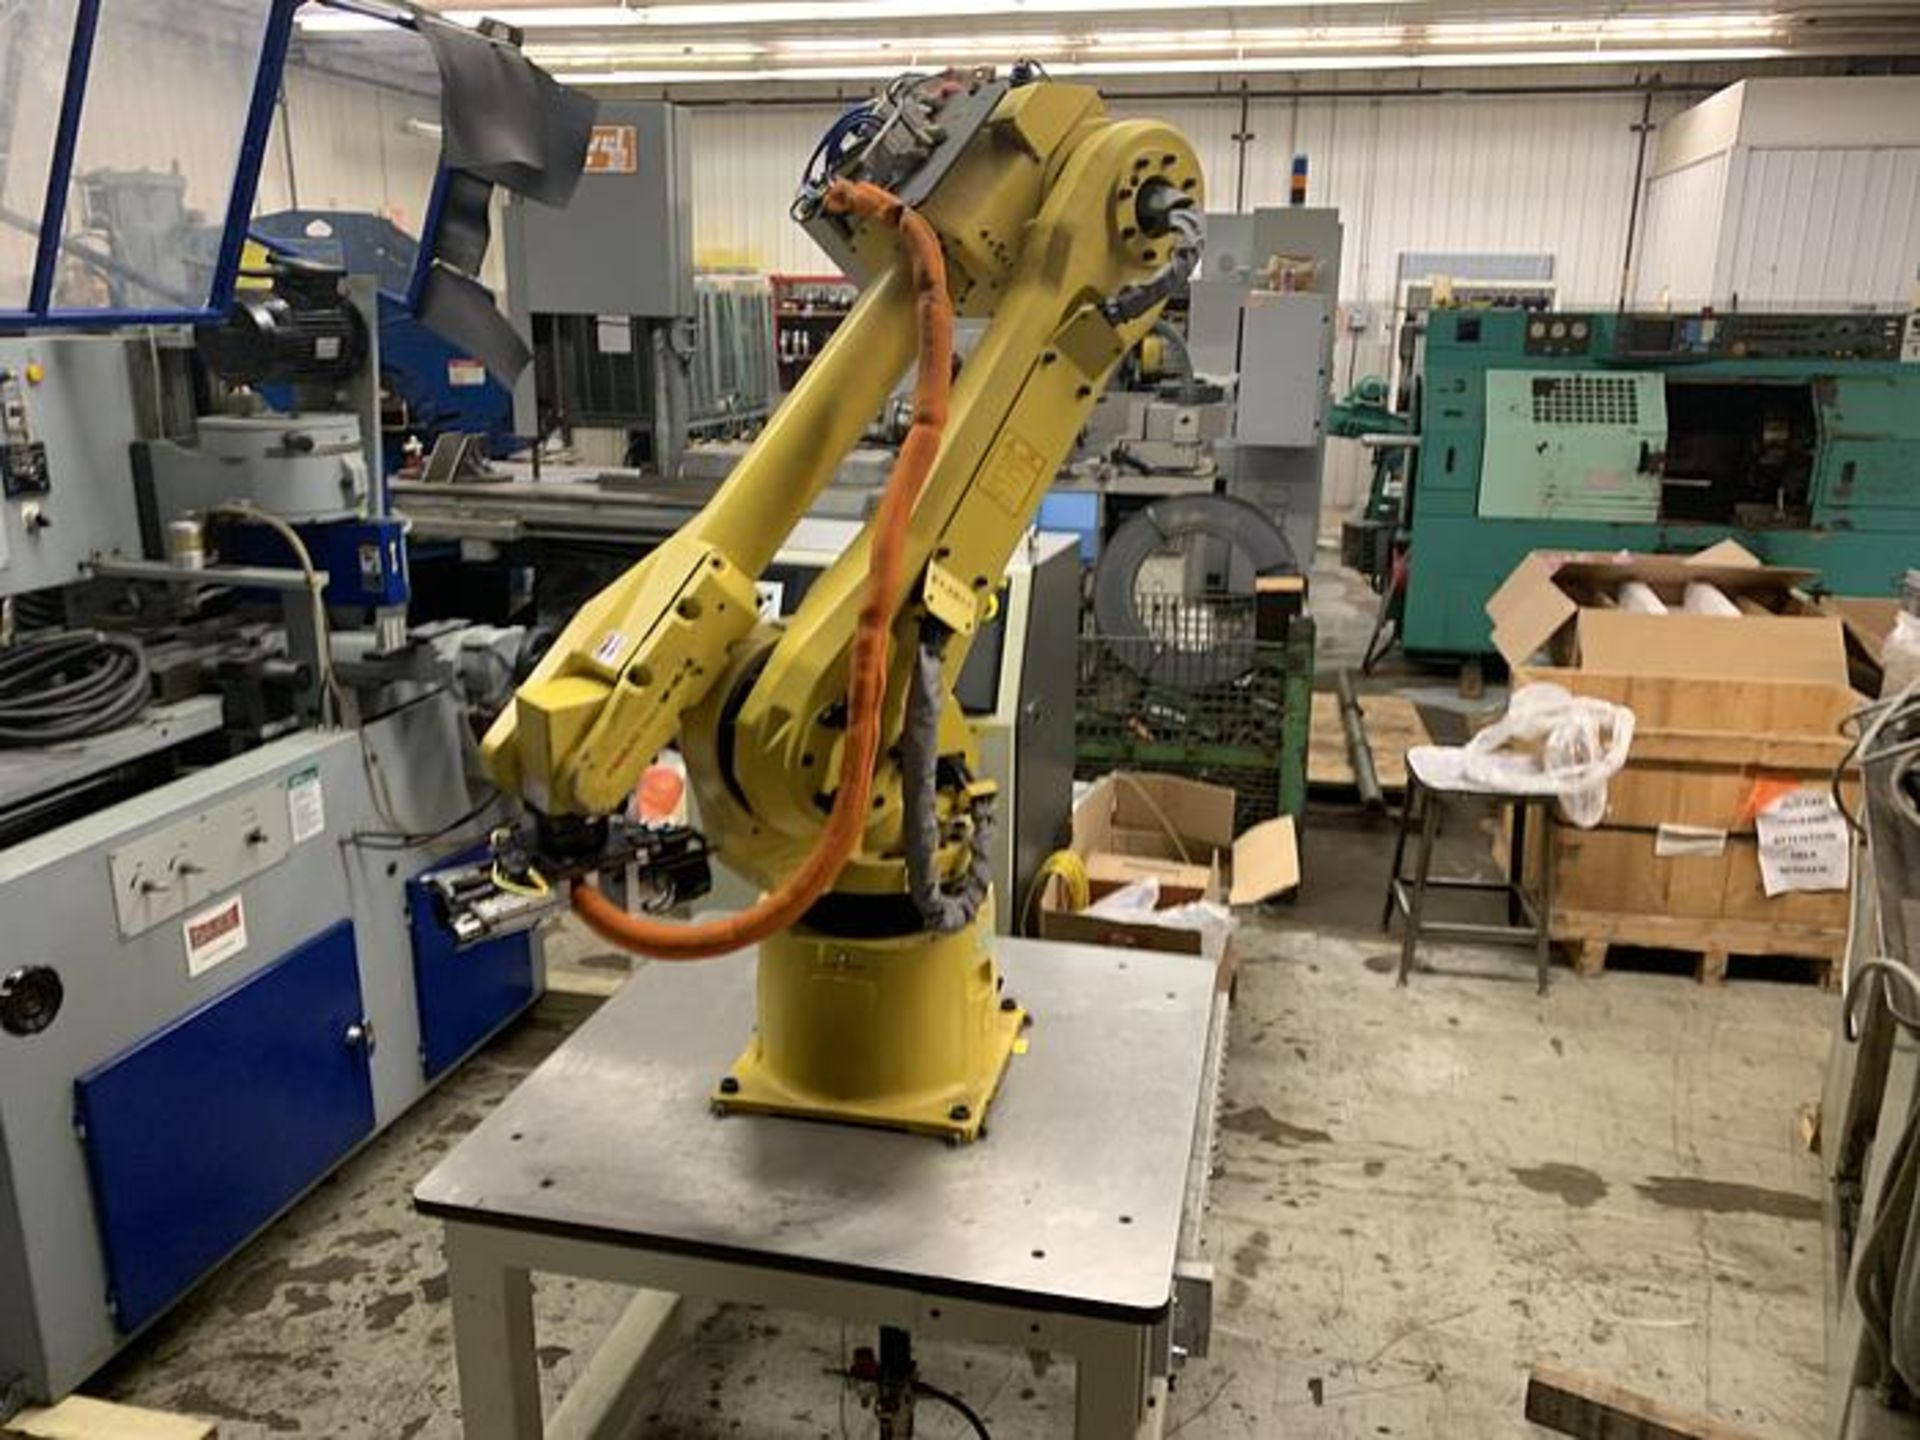 Lot 51 - FANUC M16iB/10L WITH RJ3iC (R30iA) CONTROLLER, TEACH & CABLES, YEAR 2006, SN 80306,